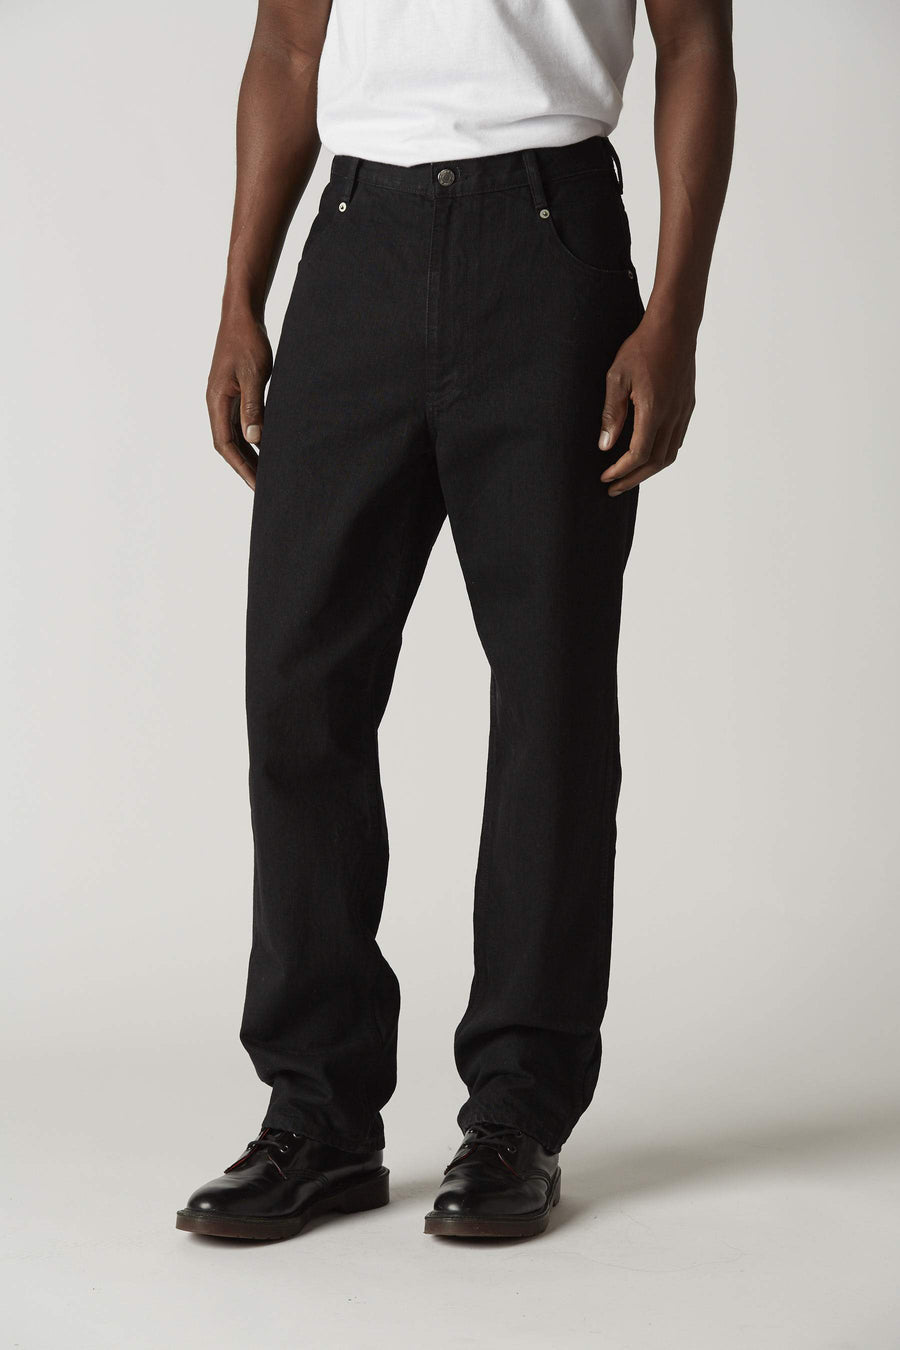 M009 in Black Rinse Wash 1